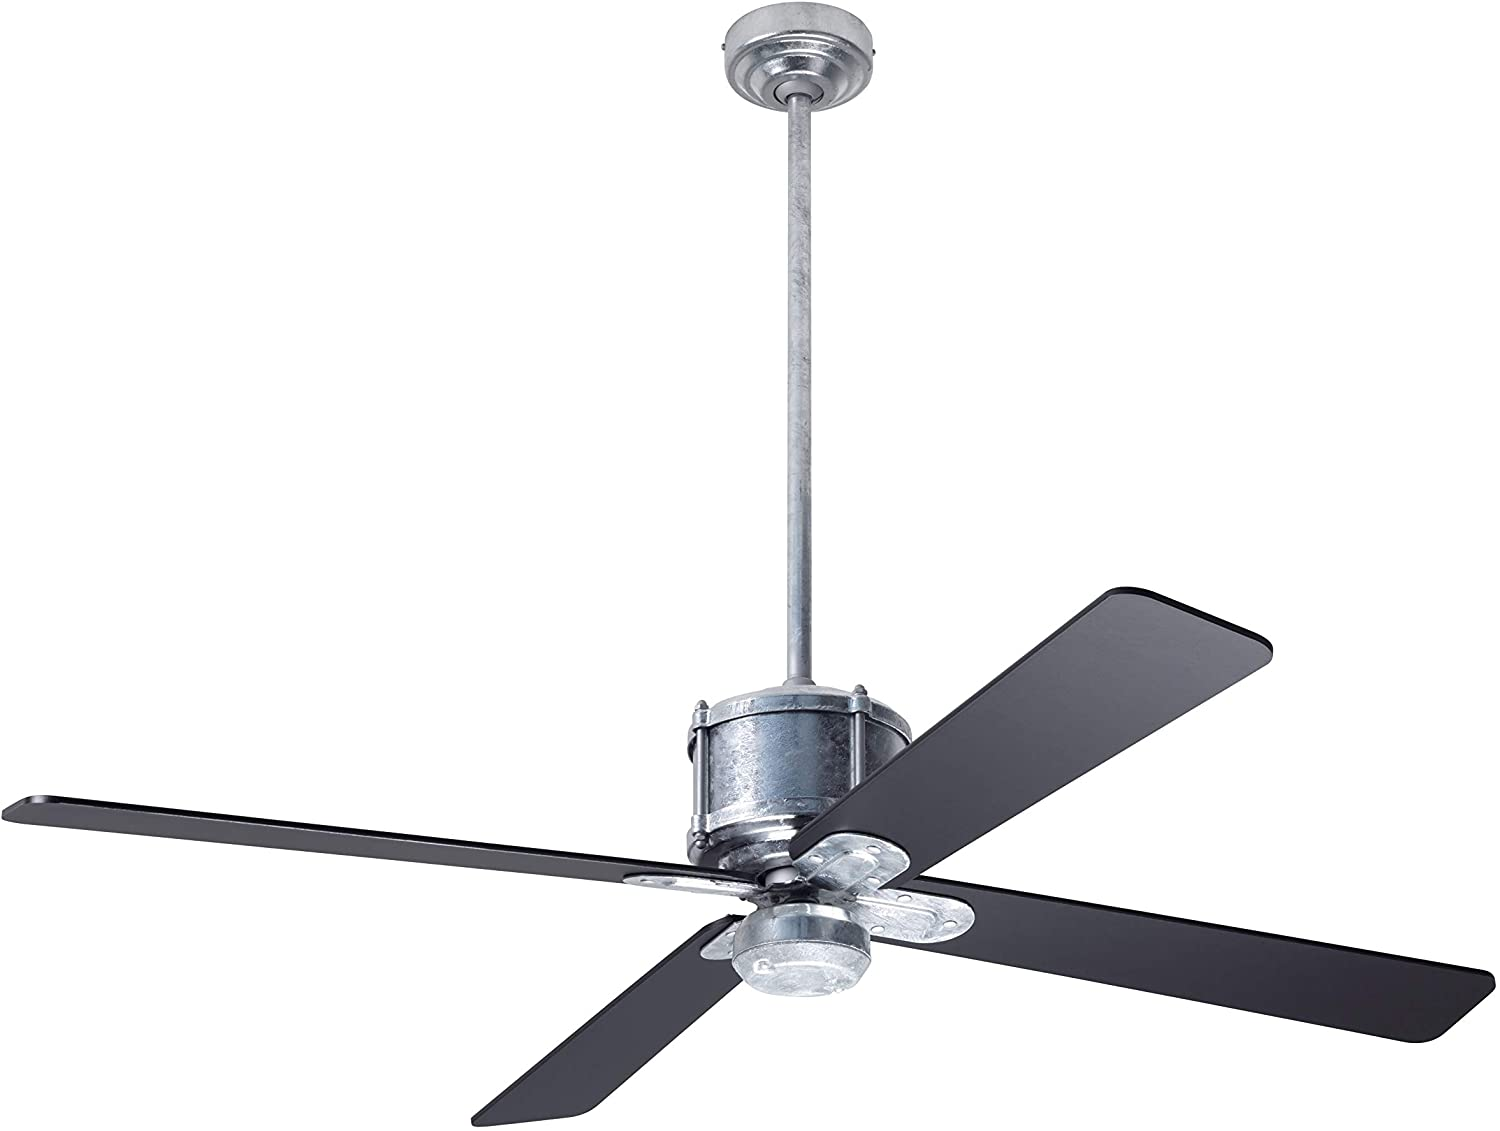 Modern Fan Co IND-GV-50-BK-NL-RC Contemporary Modern 50``Ceiling Fan from Industry DC Collection in Pwt, Nckl, B/S, Slvr. Finish,